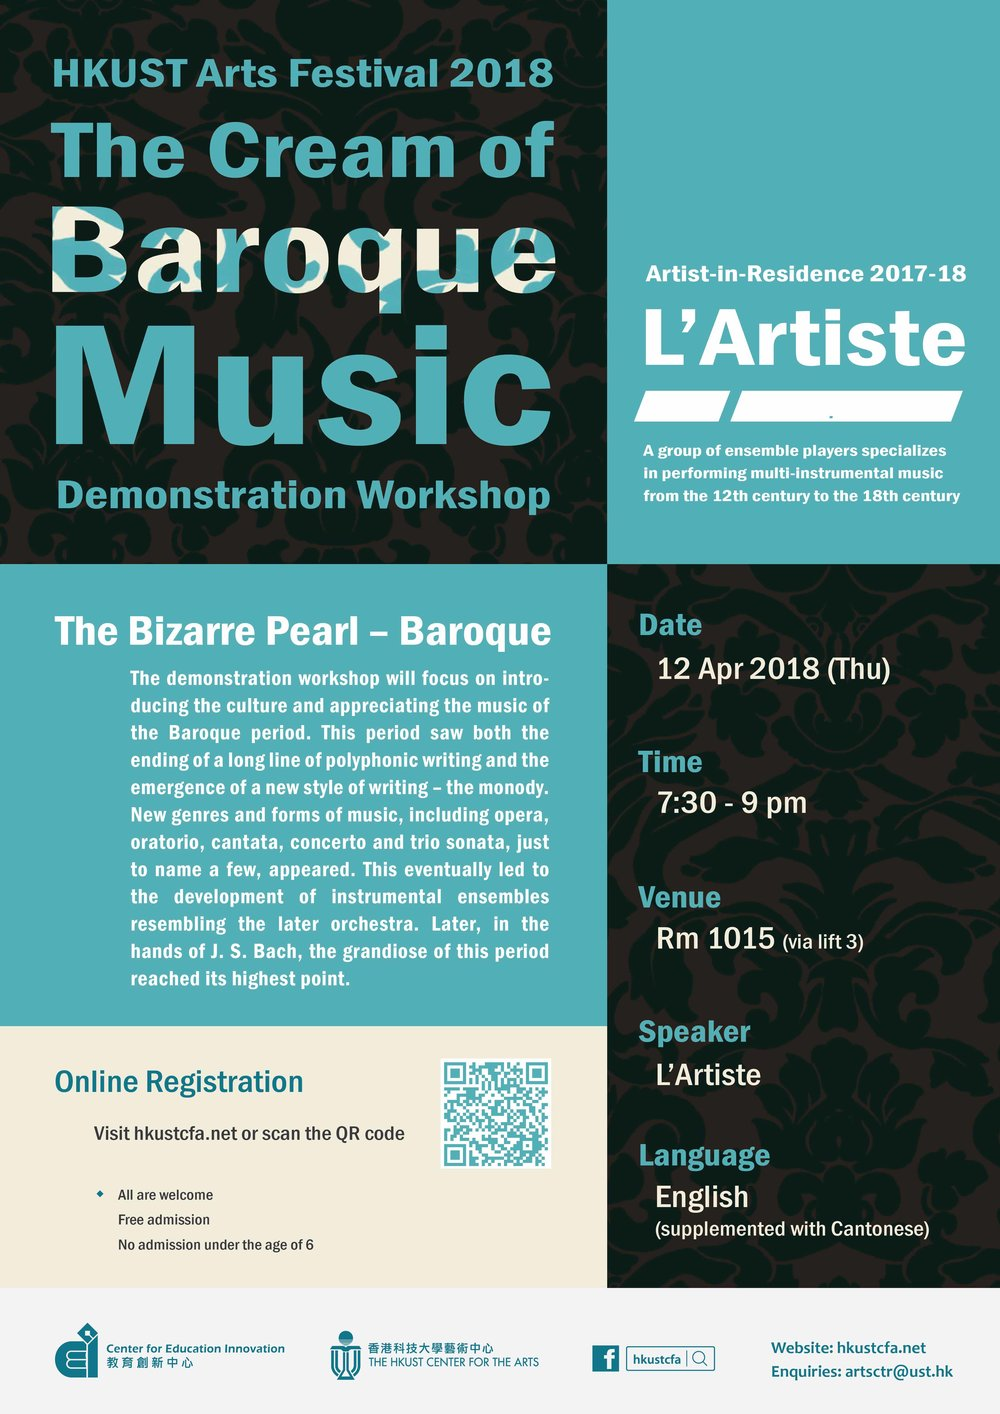 Artist-in-Residence: The Cream of Baroque Music Demonstration Workshop  Apr 12, 2018